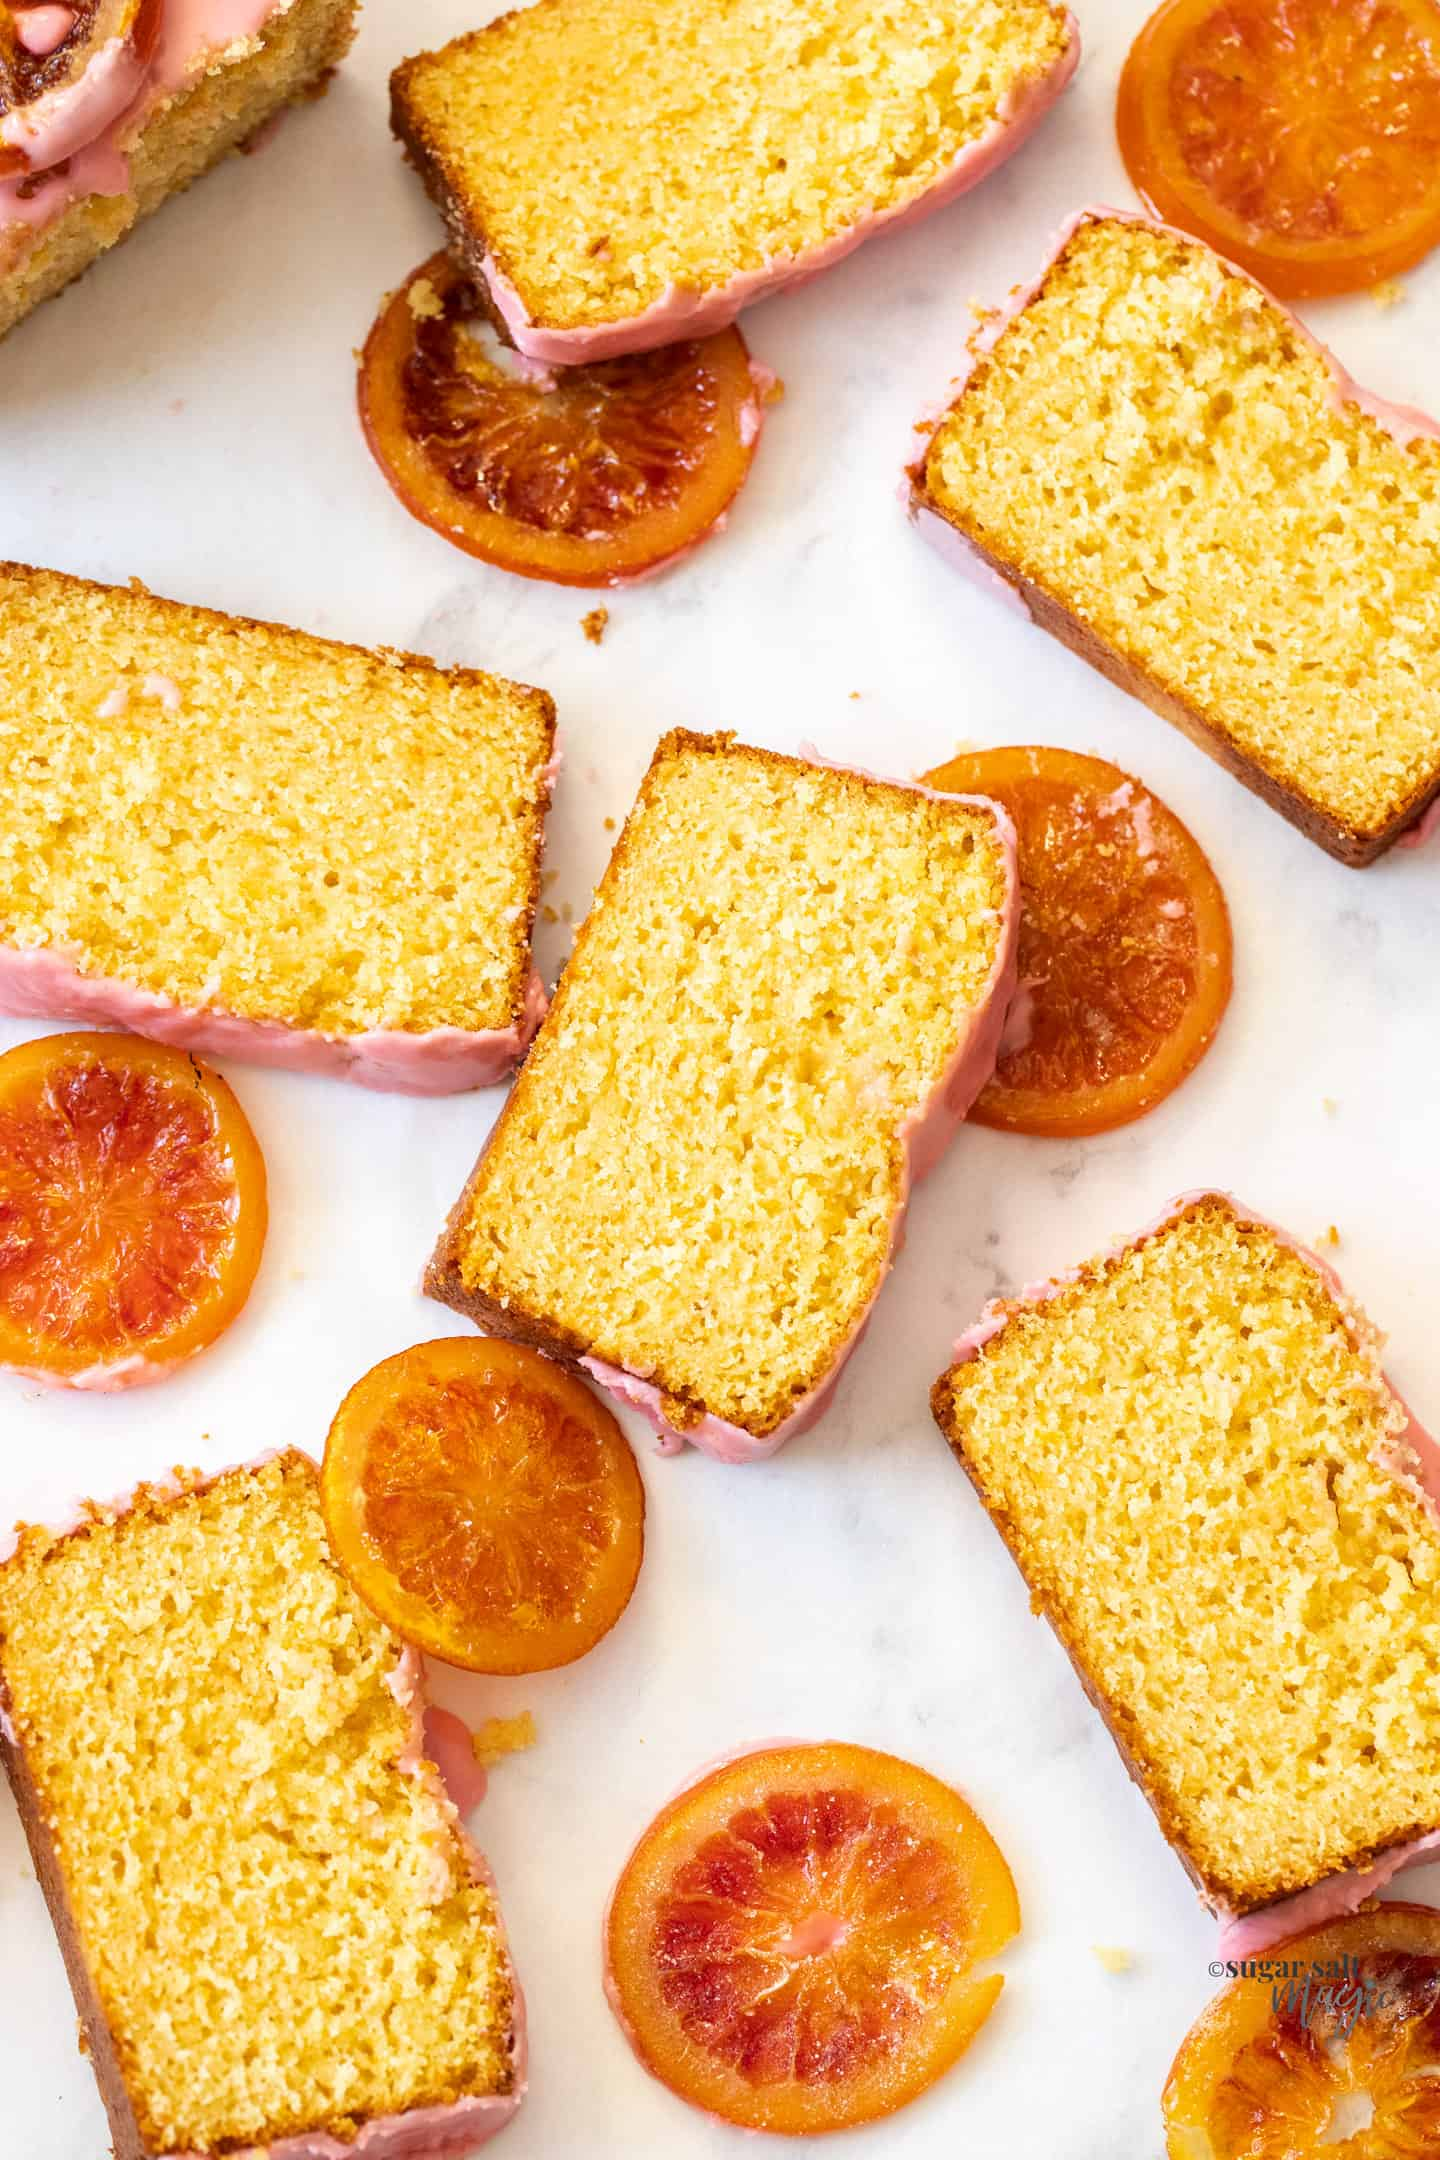 Slices of orange loaf cake surrounded by candied oranges.